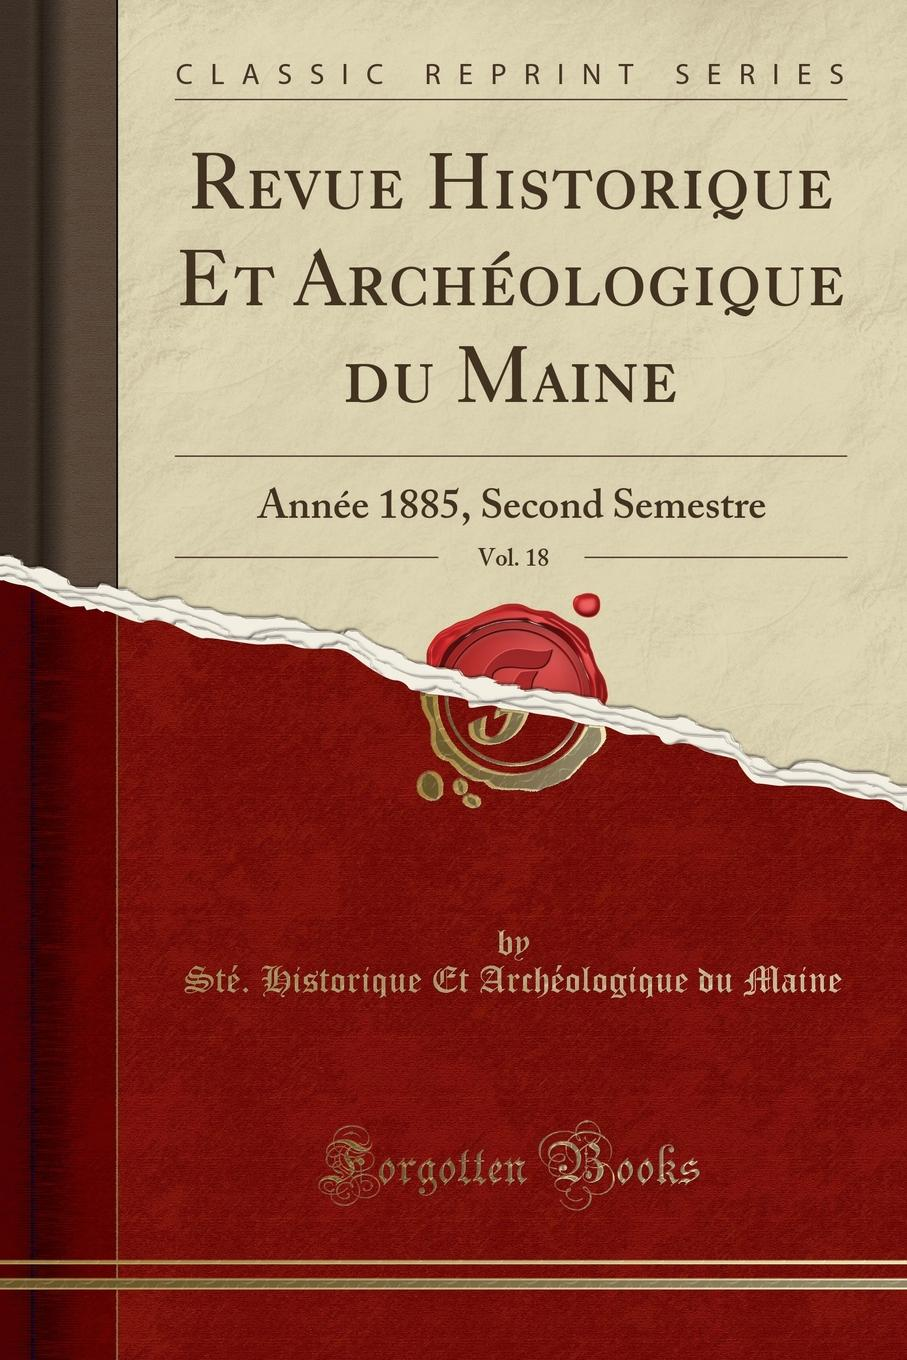 Sté. Historique Et Archéologiqu Maine Revue Historique Et Archeologique du Maine, Vol. 18. Annee 1885, Second Semestre (Classic Reprint) paul laurent revue historique ardennaise vol 3 annee 1896 classic reprint